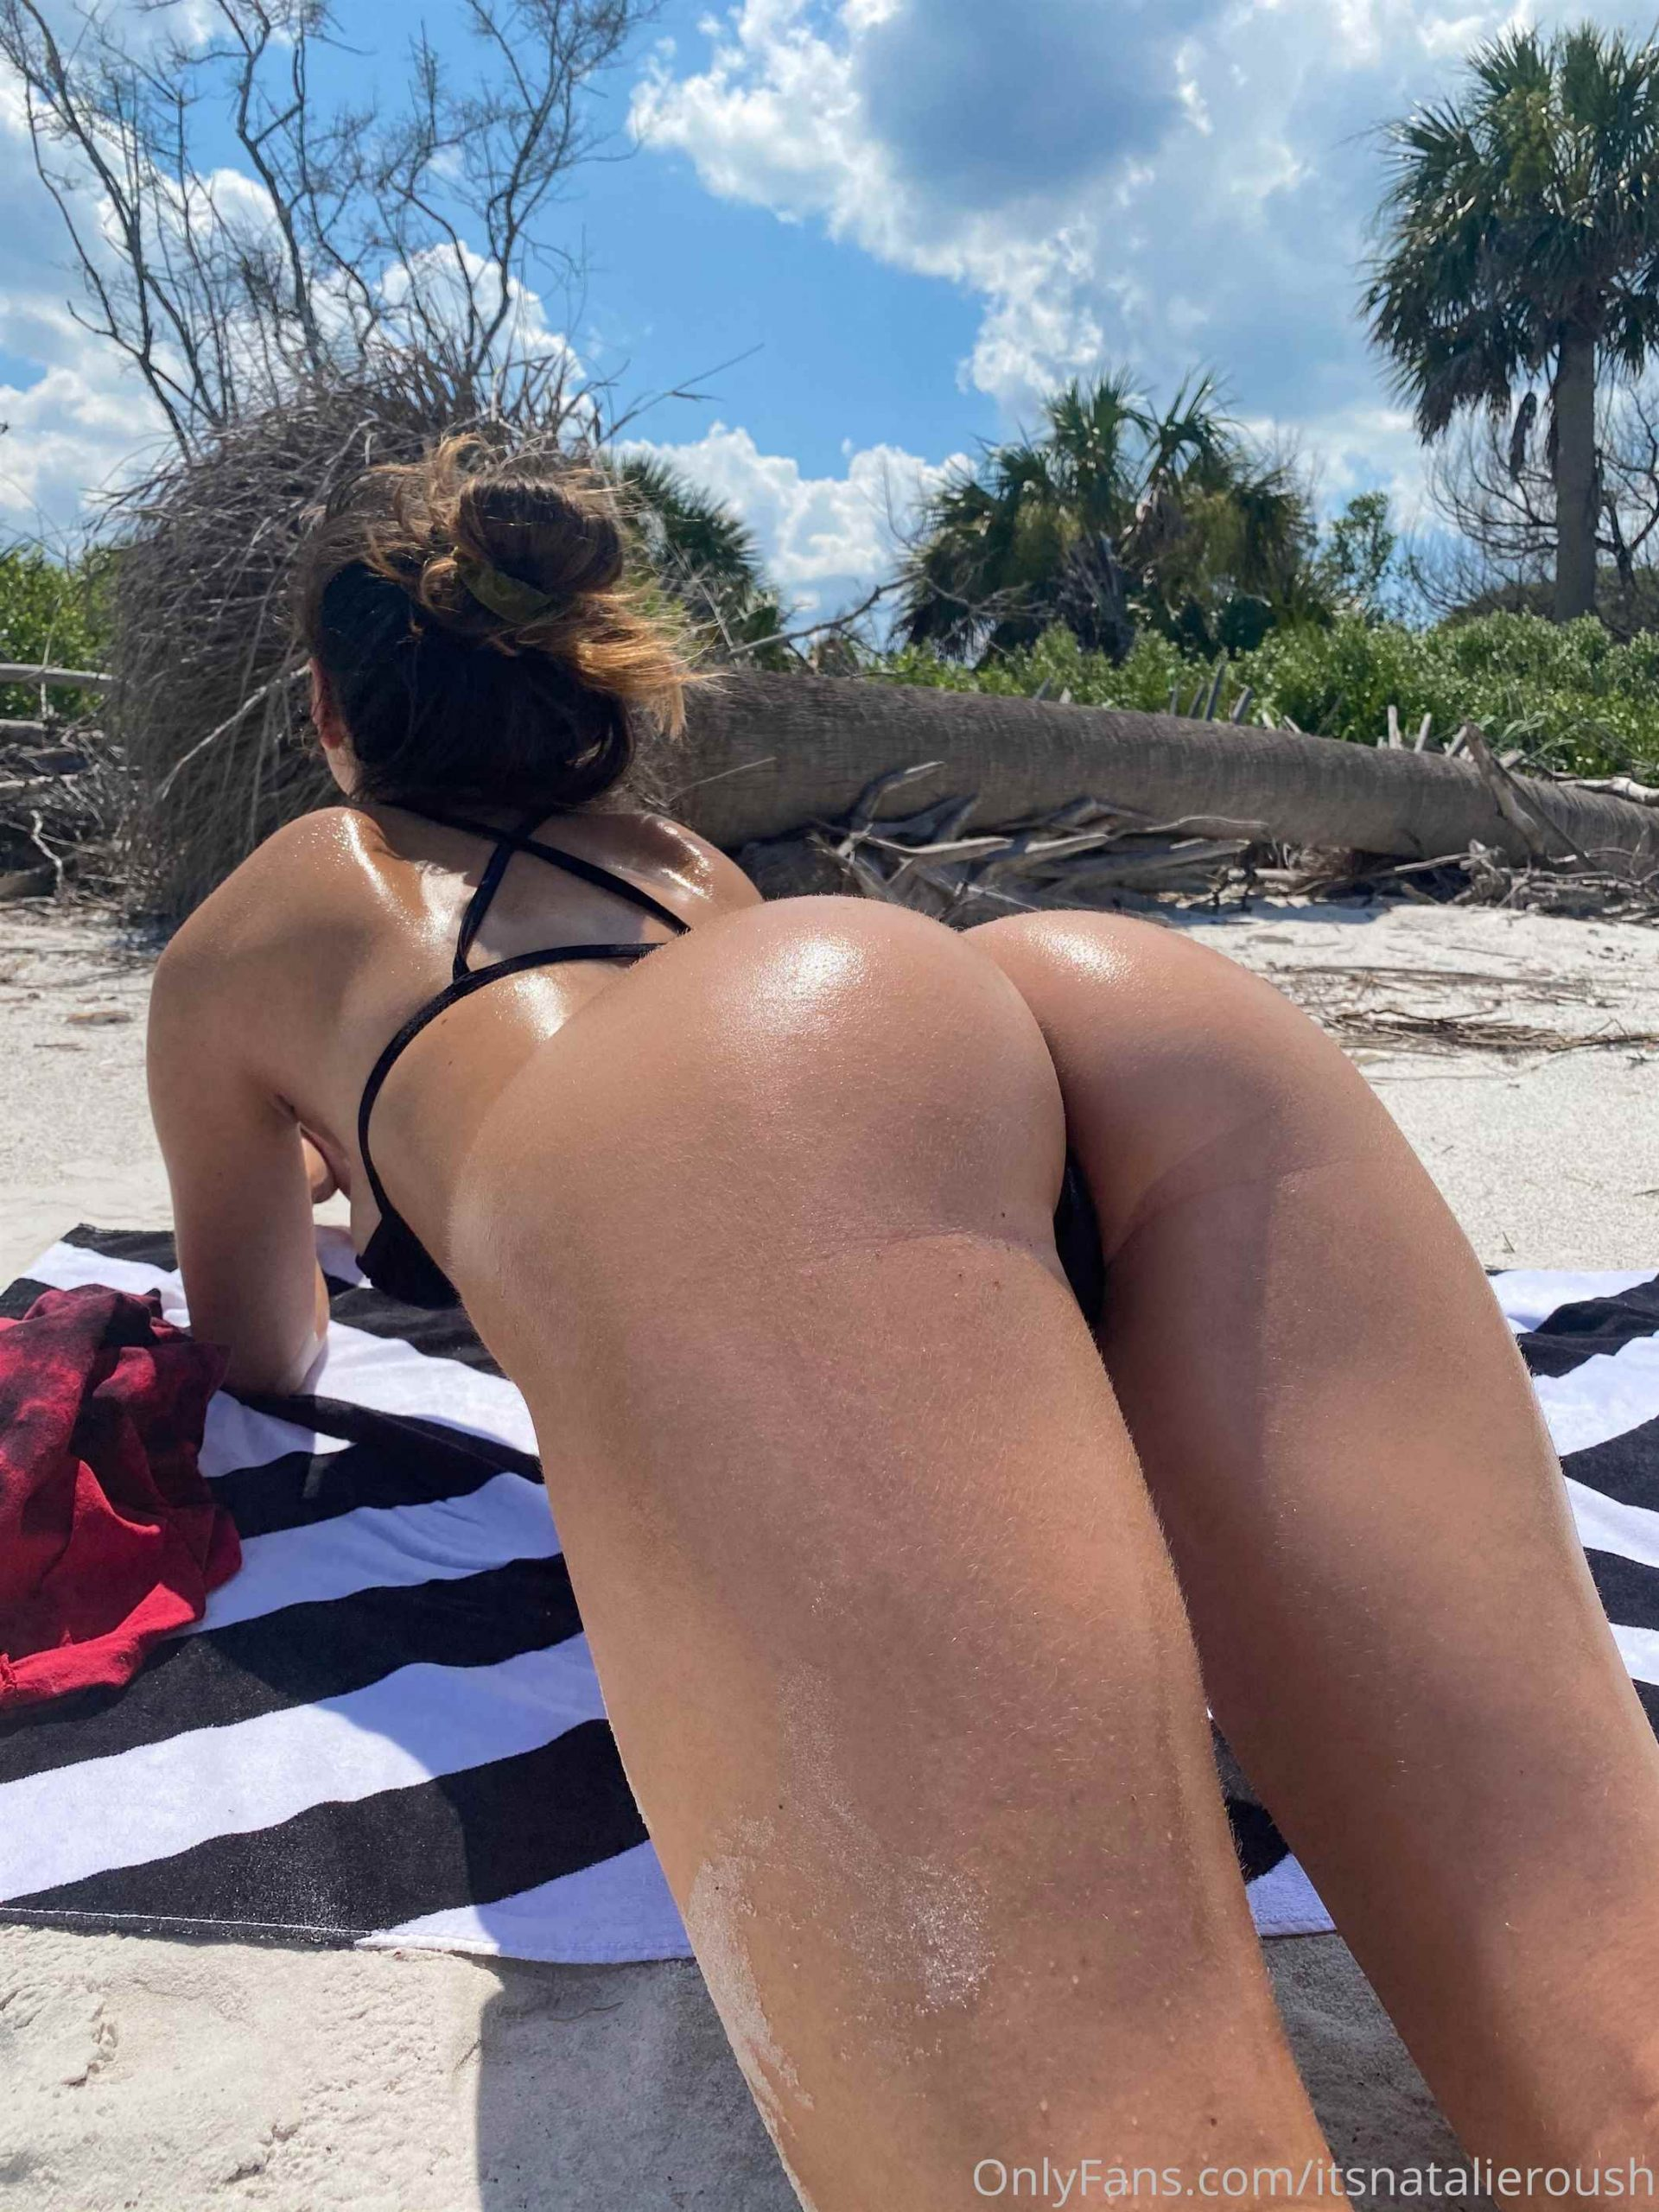 Natalie Roush Nude Leaked Onlyfans Photos 0040